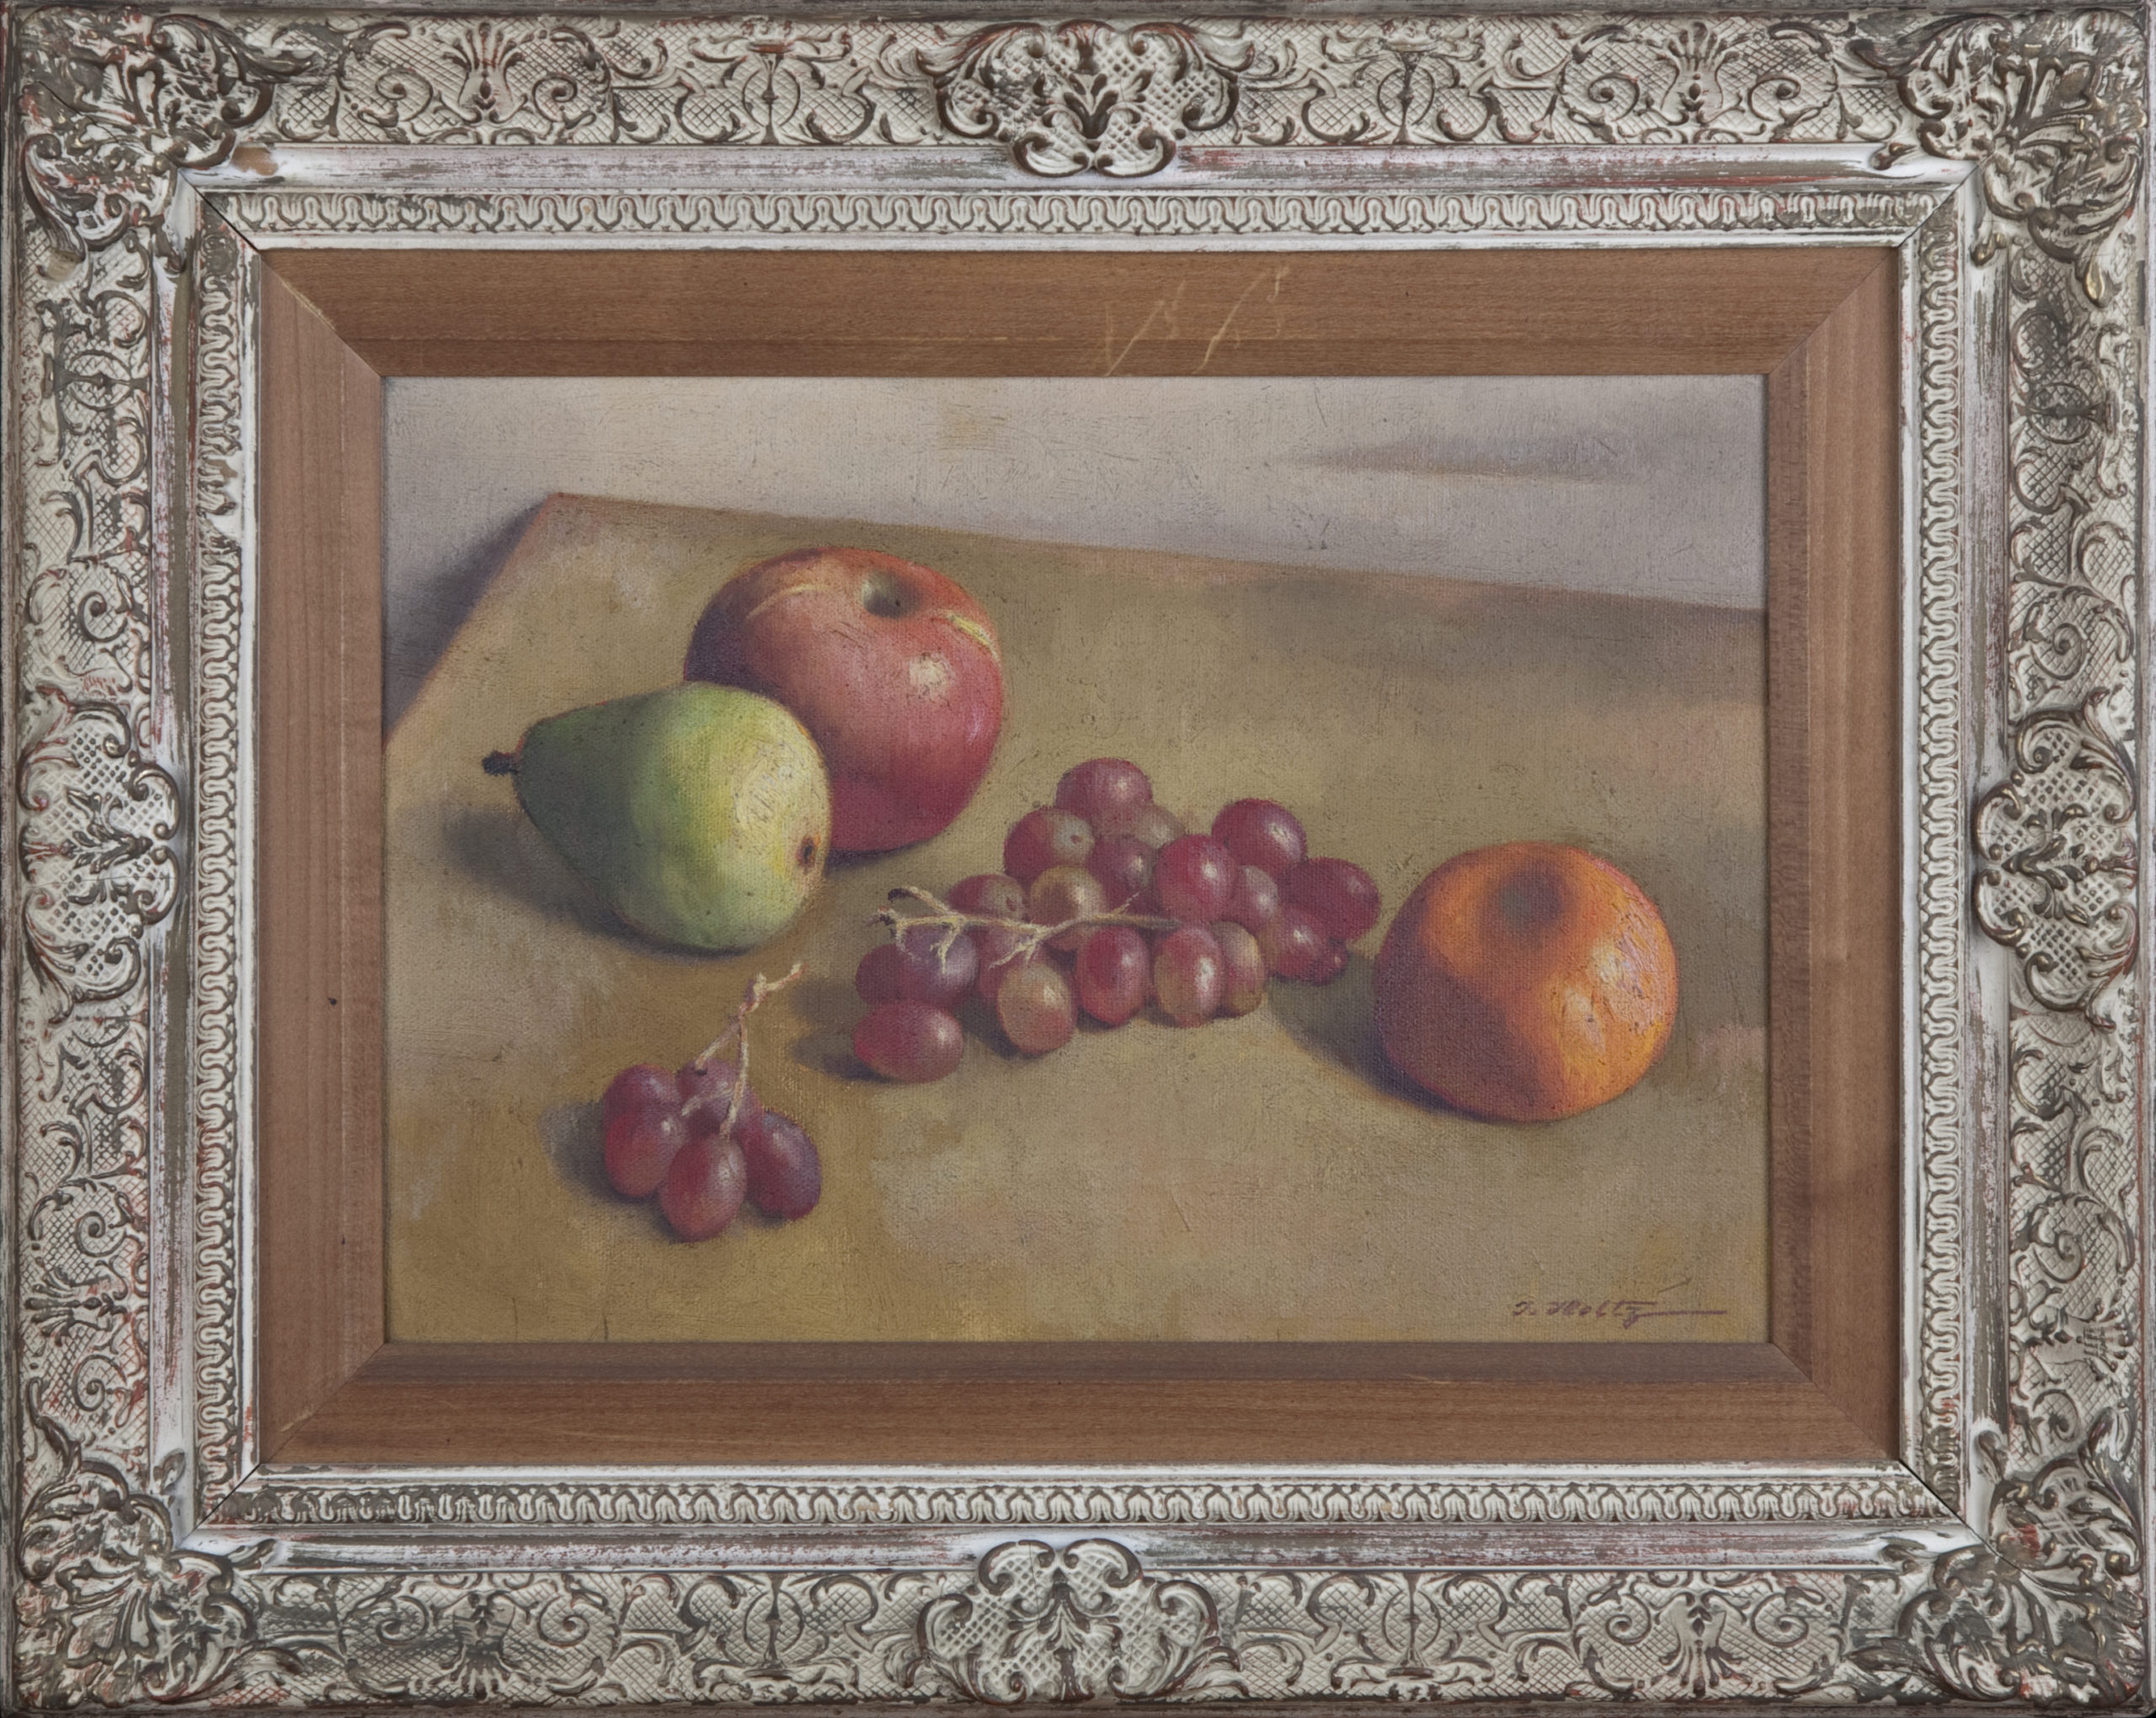 201 Still Life Apple Pear Grapes. Orange 1950 - Oil on Canvas - 14 x 10 - Frame: 20.5 x 16.5 x 2